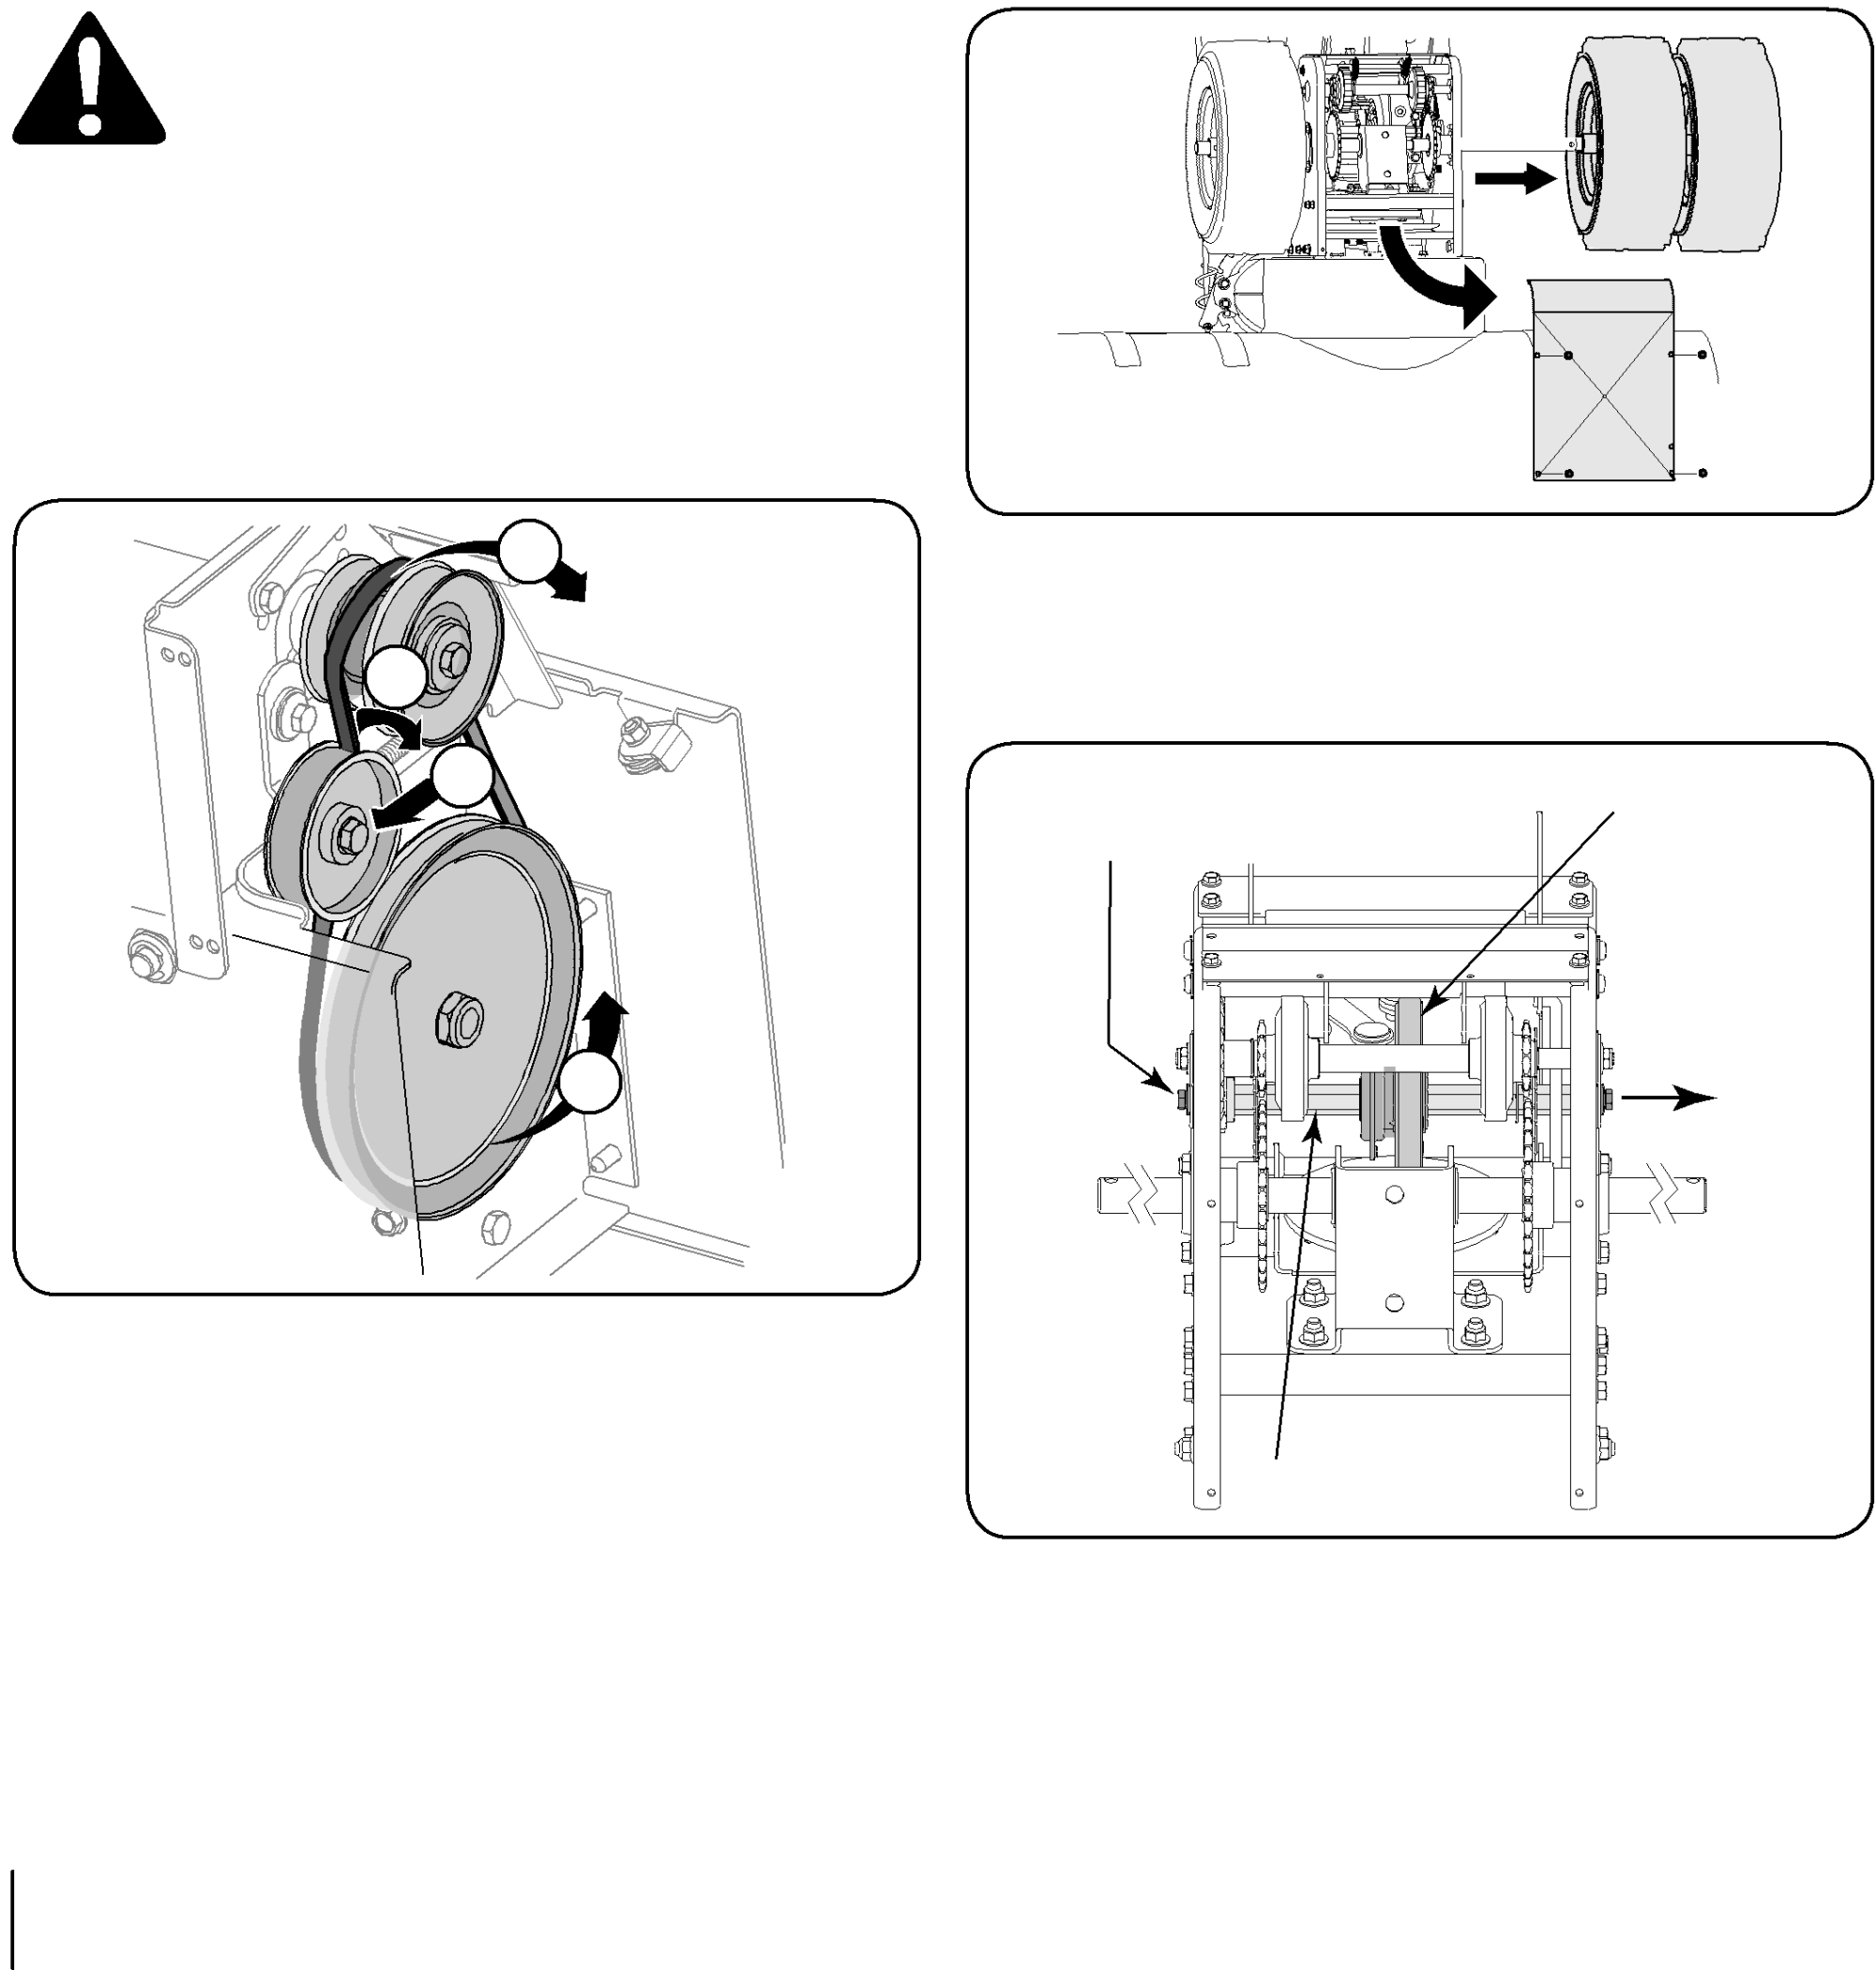 hight resolution of if also replacing the drive belt proceed to the drive belt instruction if not reposition the transmission frame back onto the auger housing